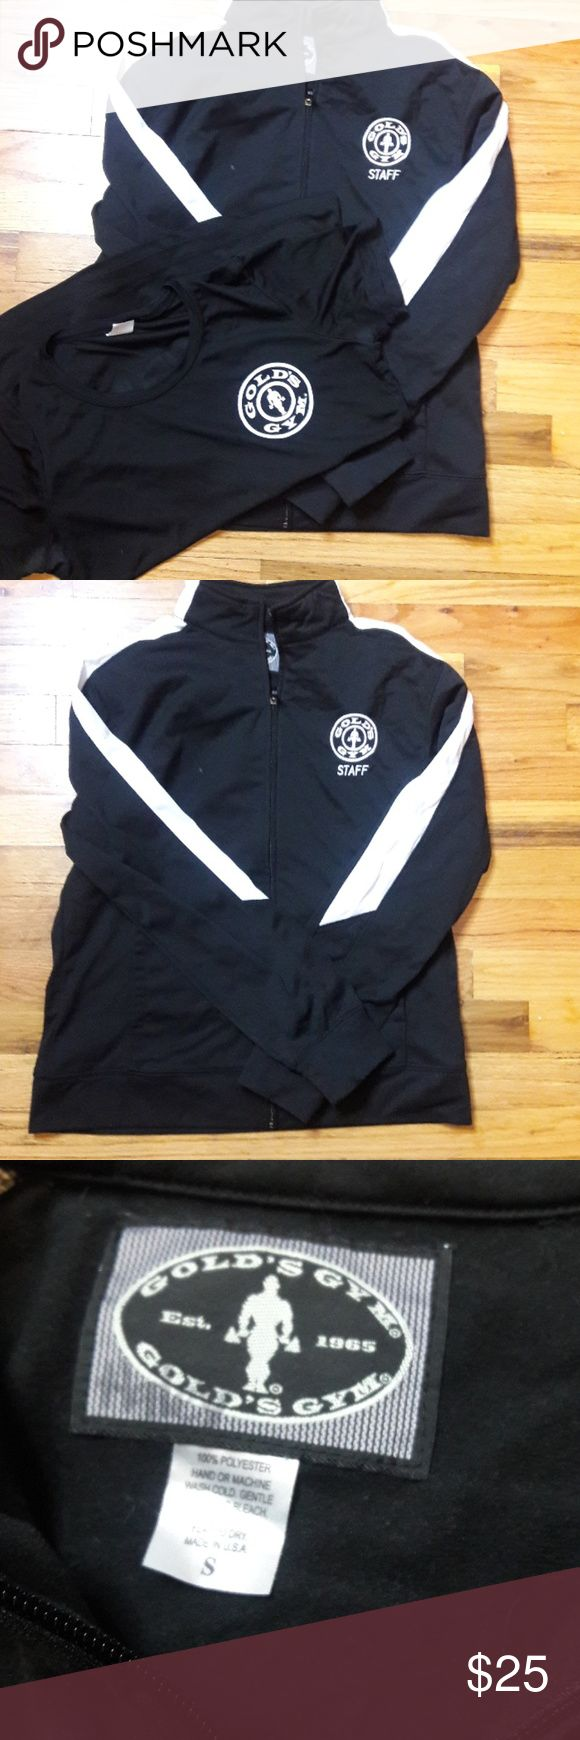 Official Golds gym track jacket and shirt Official staff track jacket from golds gym and staff shirt.  😊 the jacket is amazing and warm and the shirt is an awesome fit. Both are in a size small! golds gym Jackets & Coats